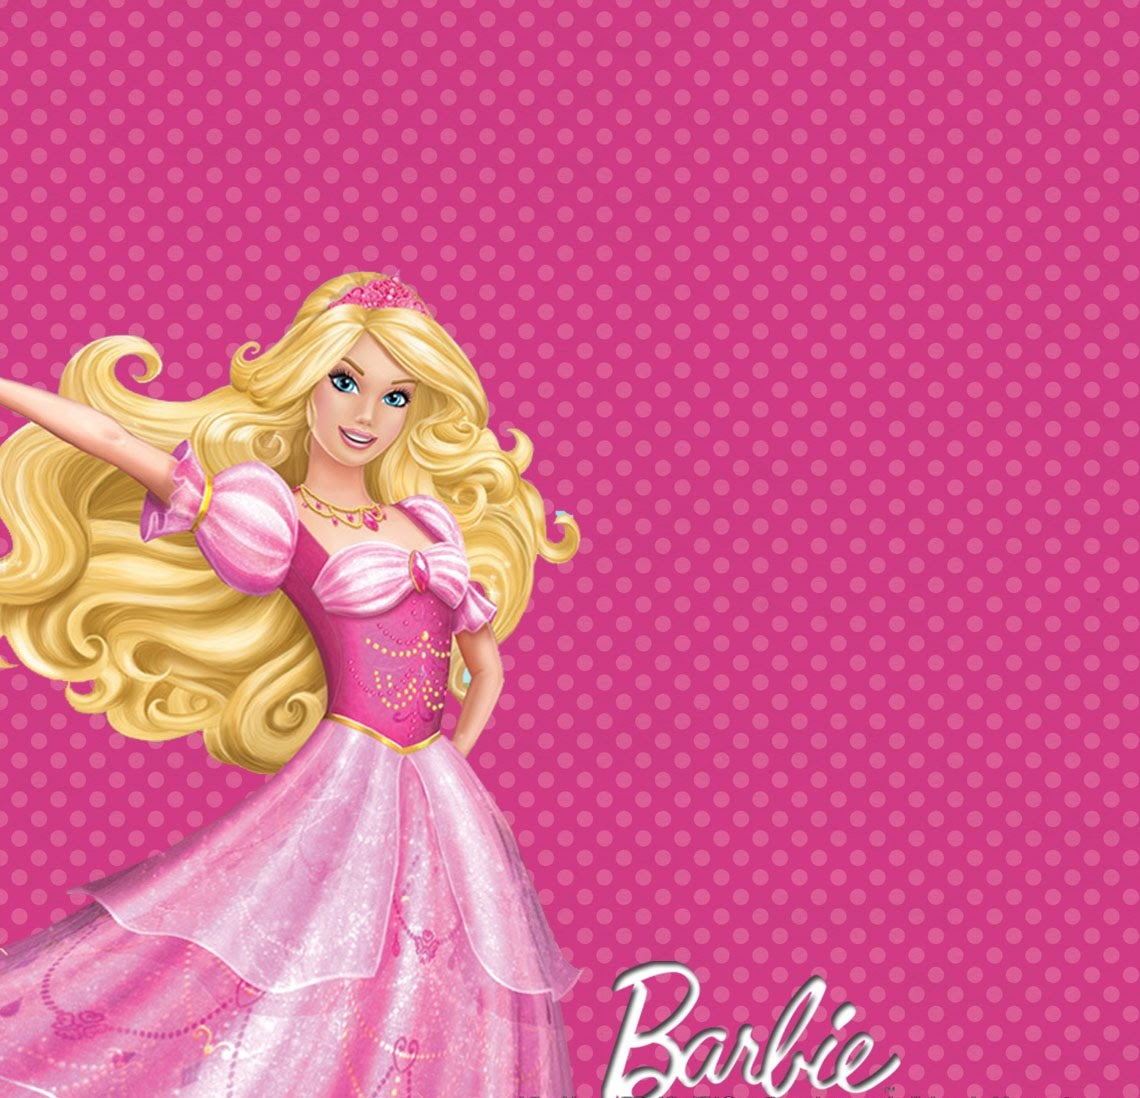 Barbie Wallpapers Wallpaper